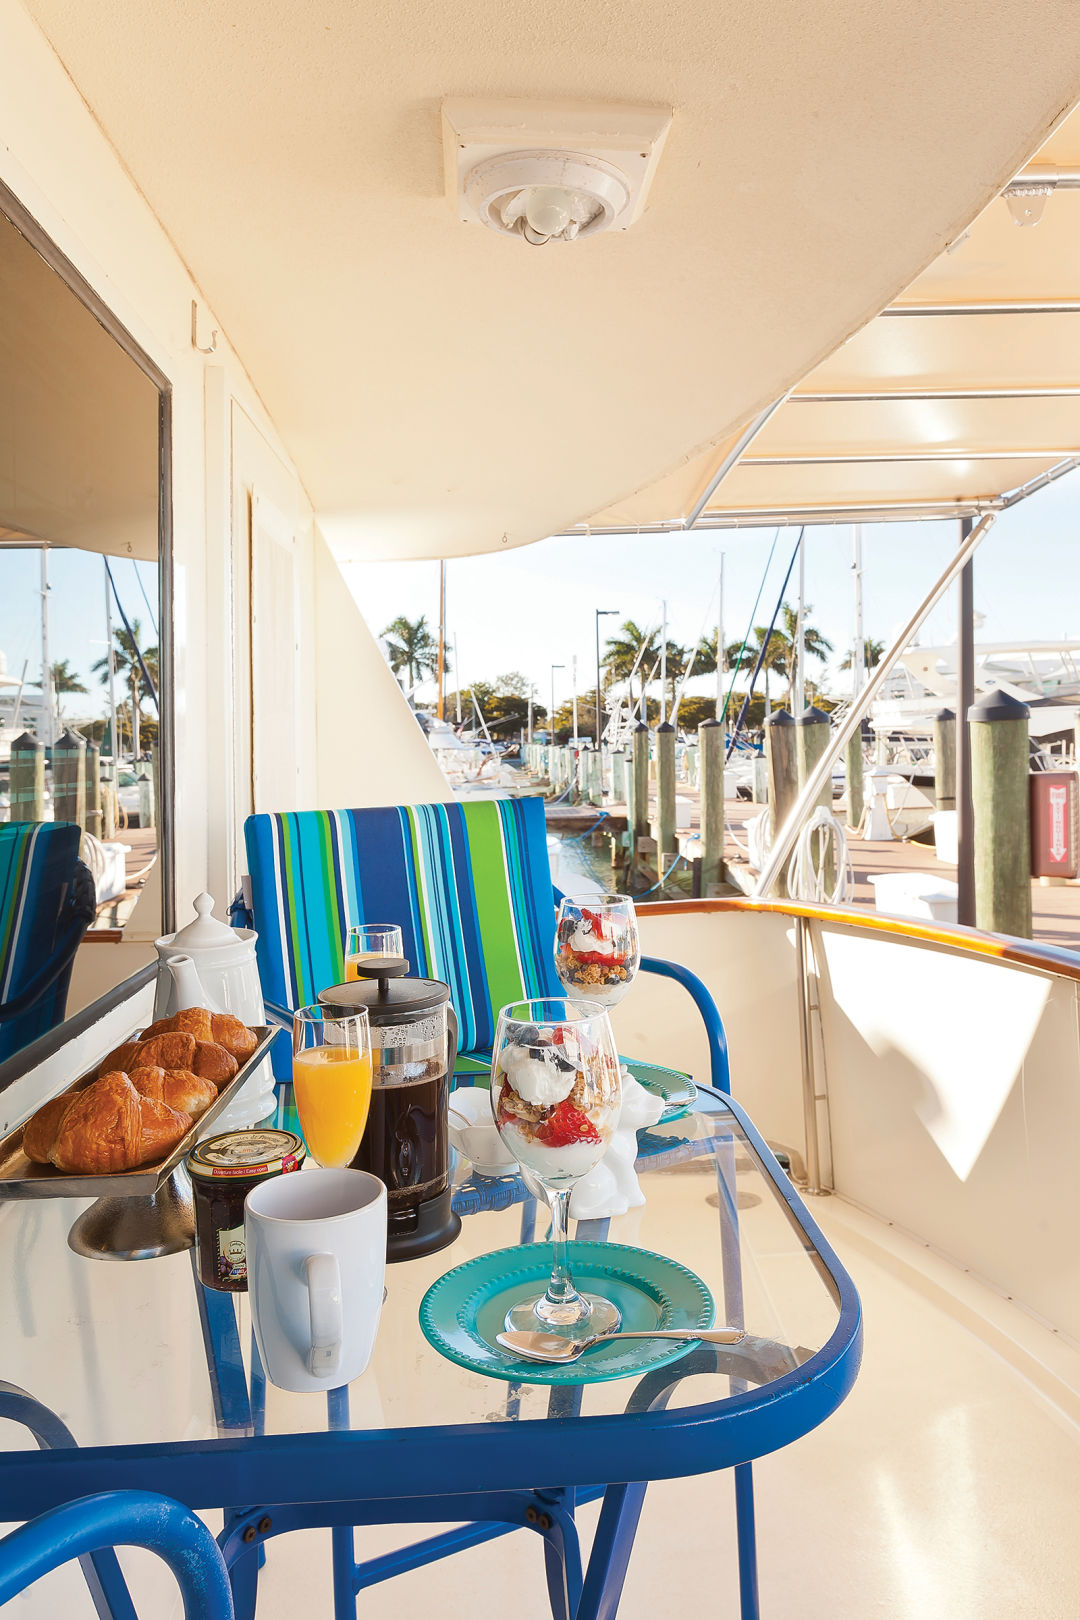 Breakfast on the rear deck of the Lancasters' yacht